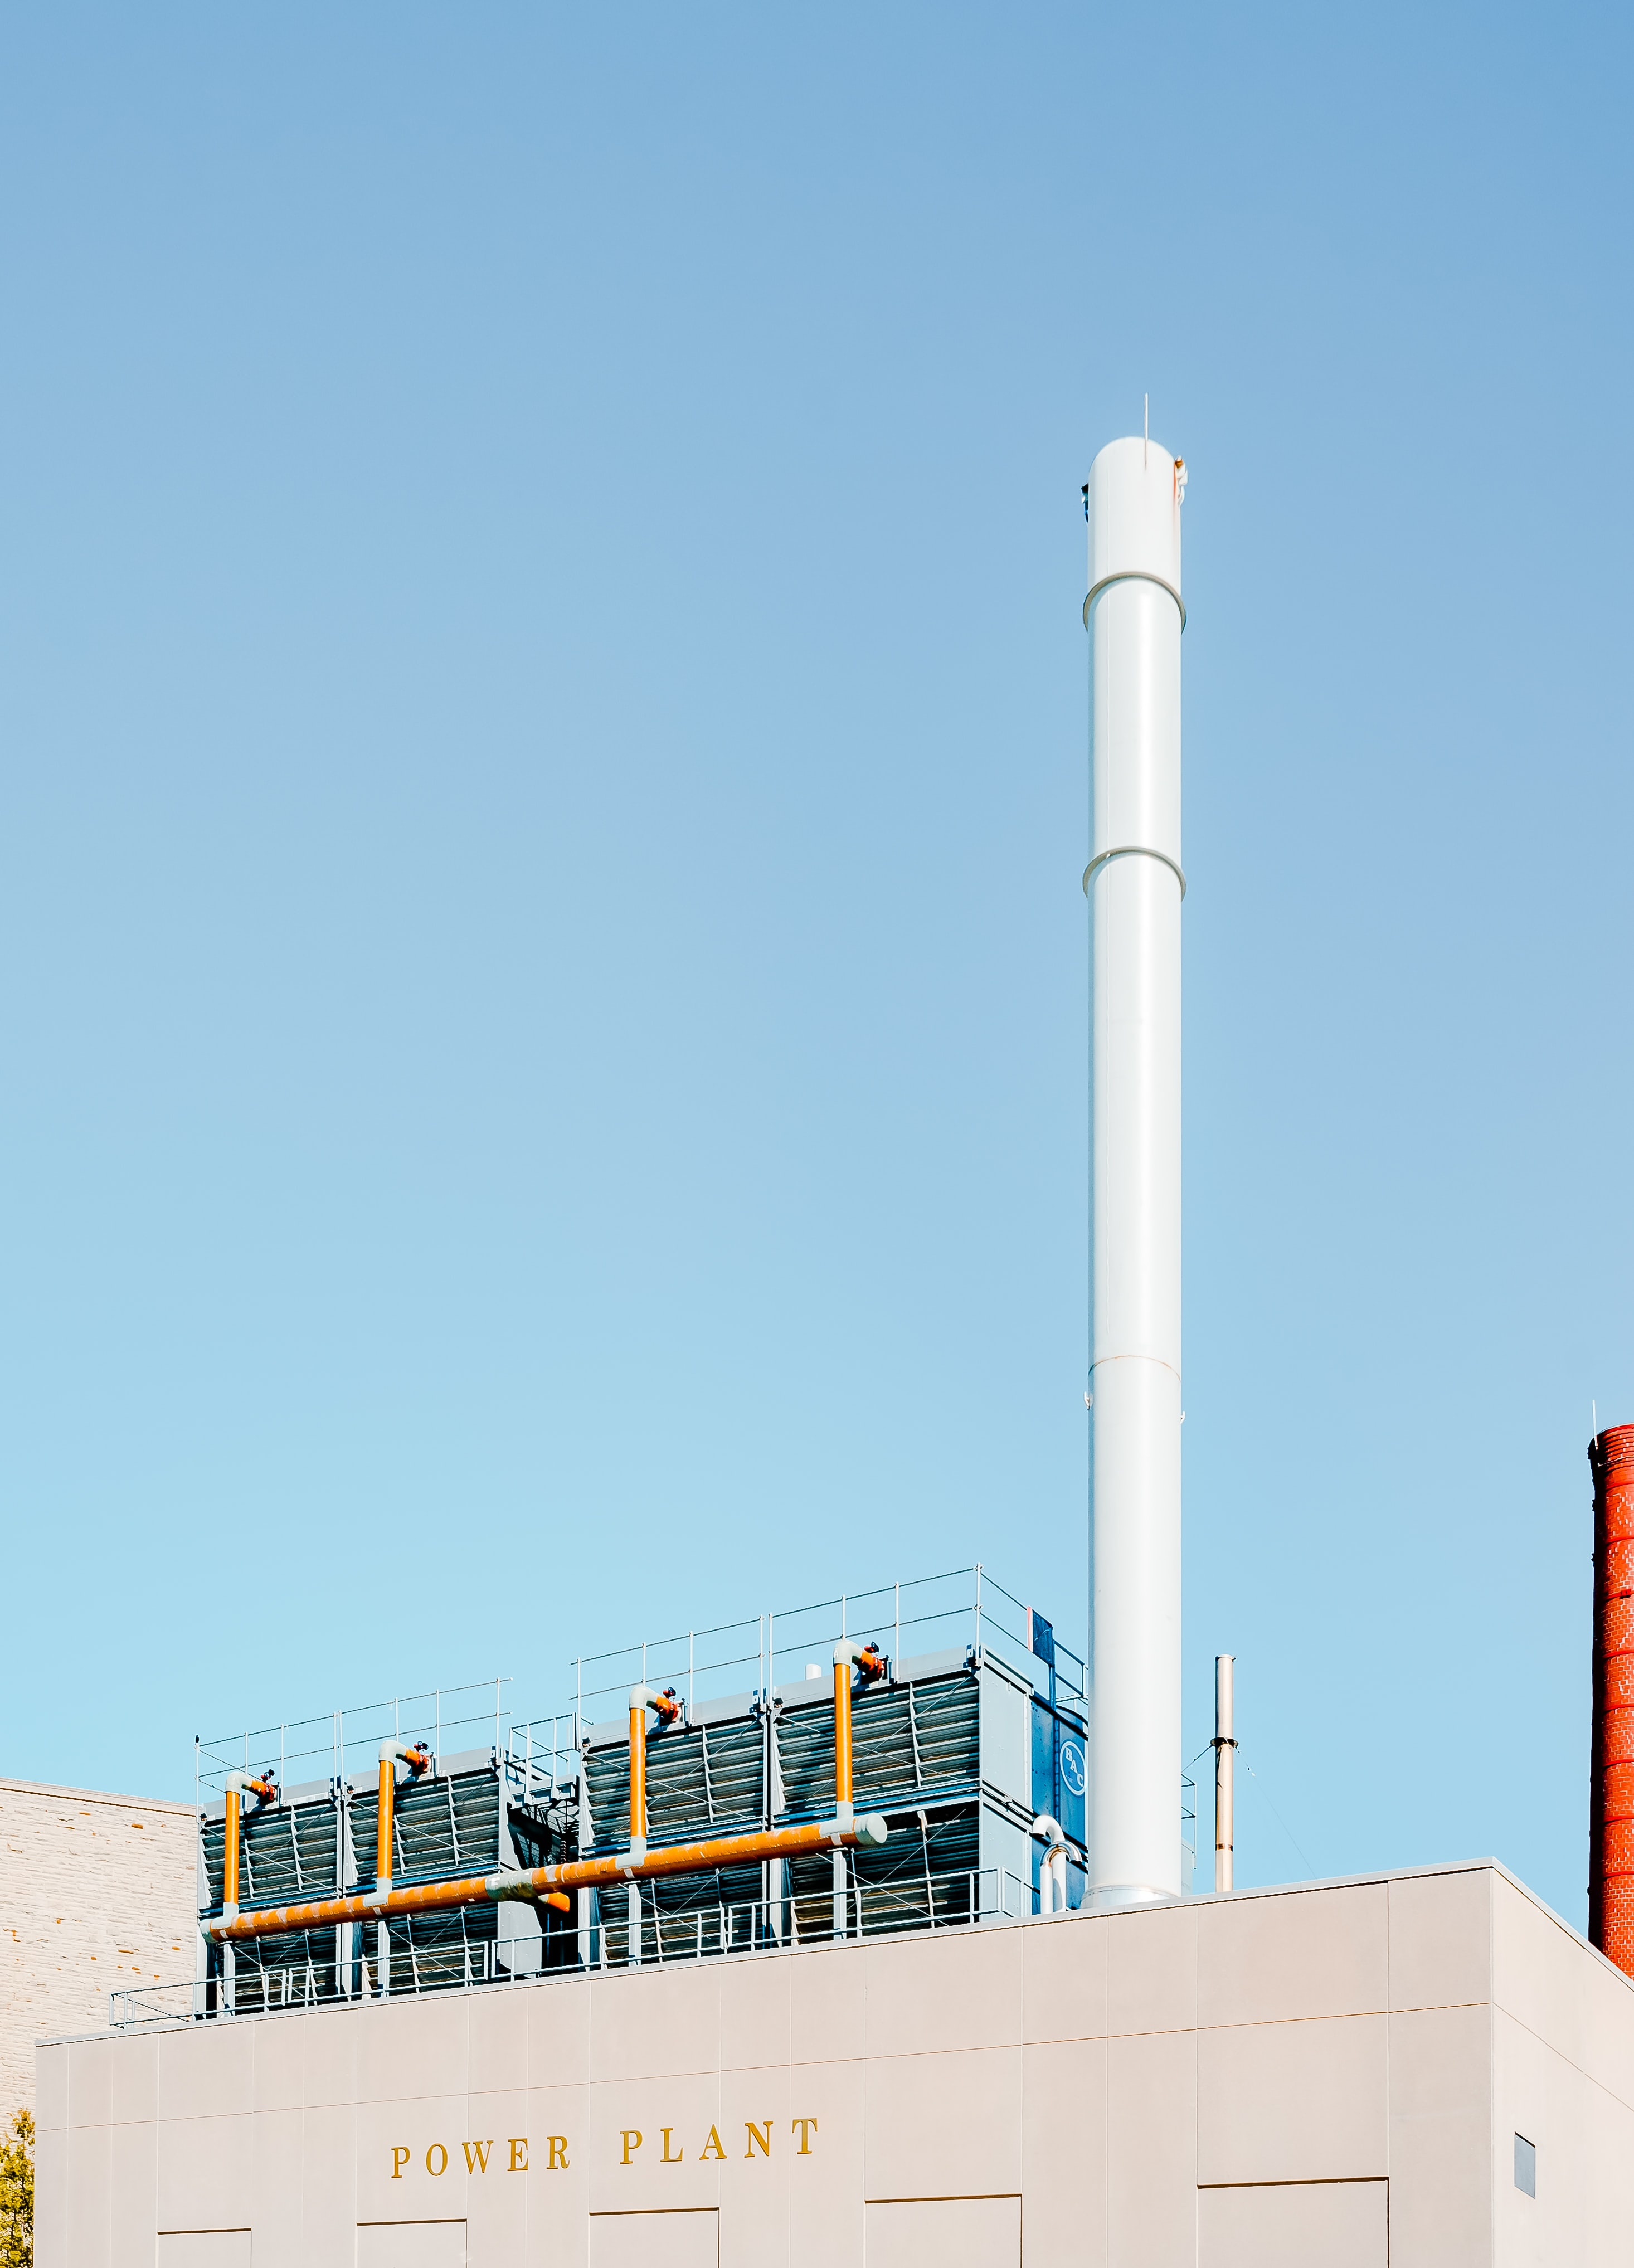 Power Plant during daytime